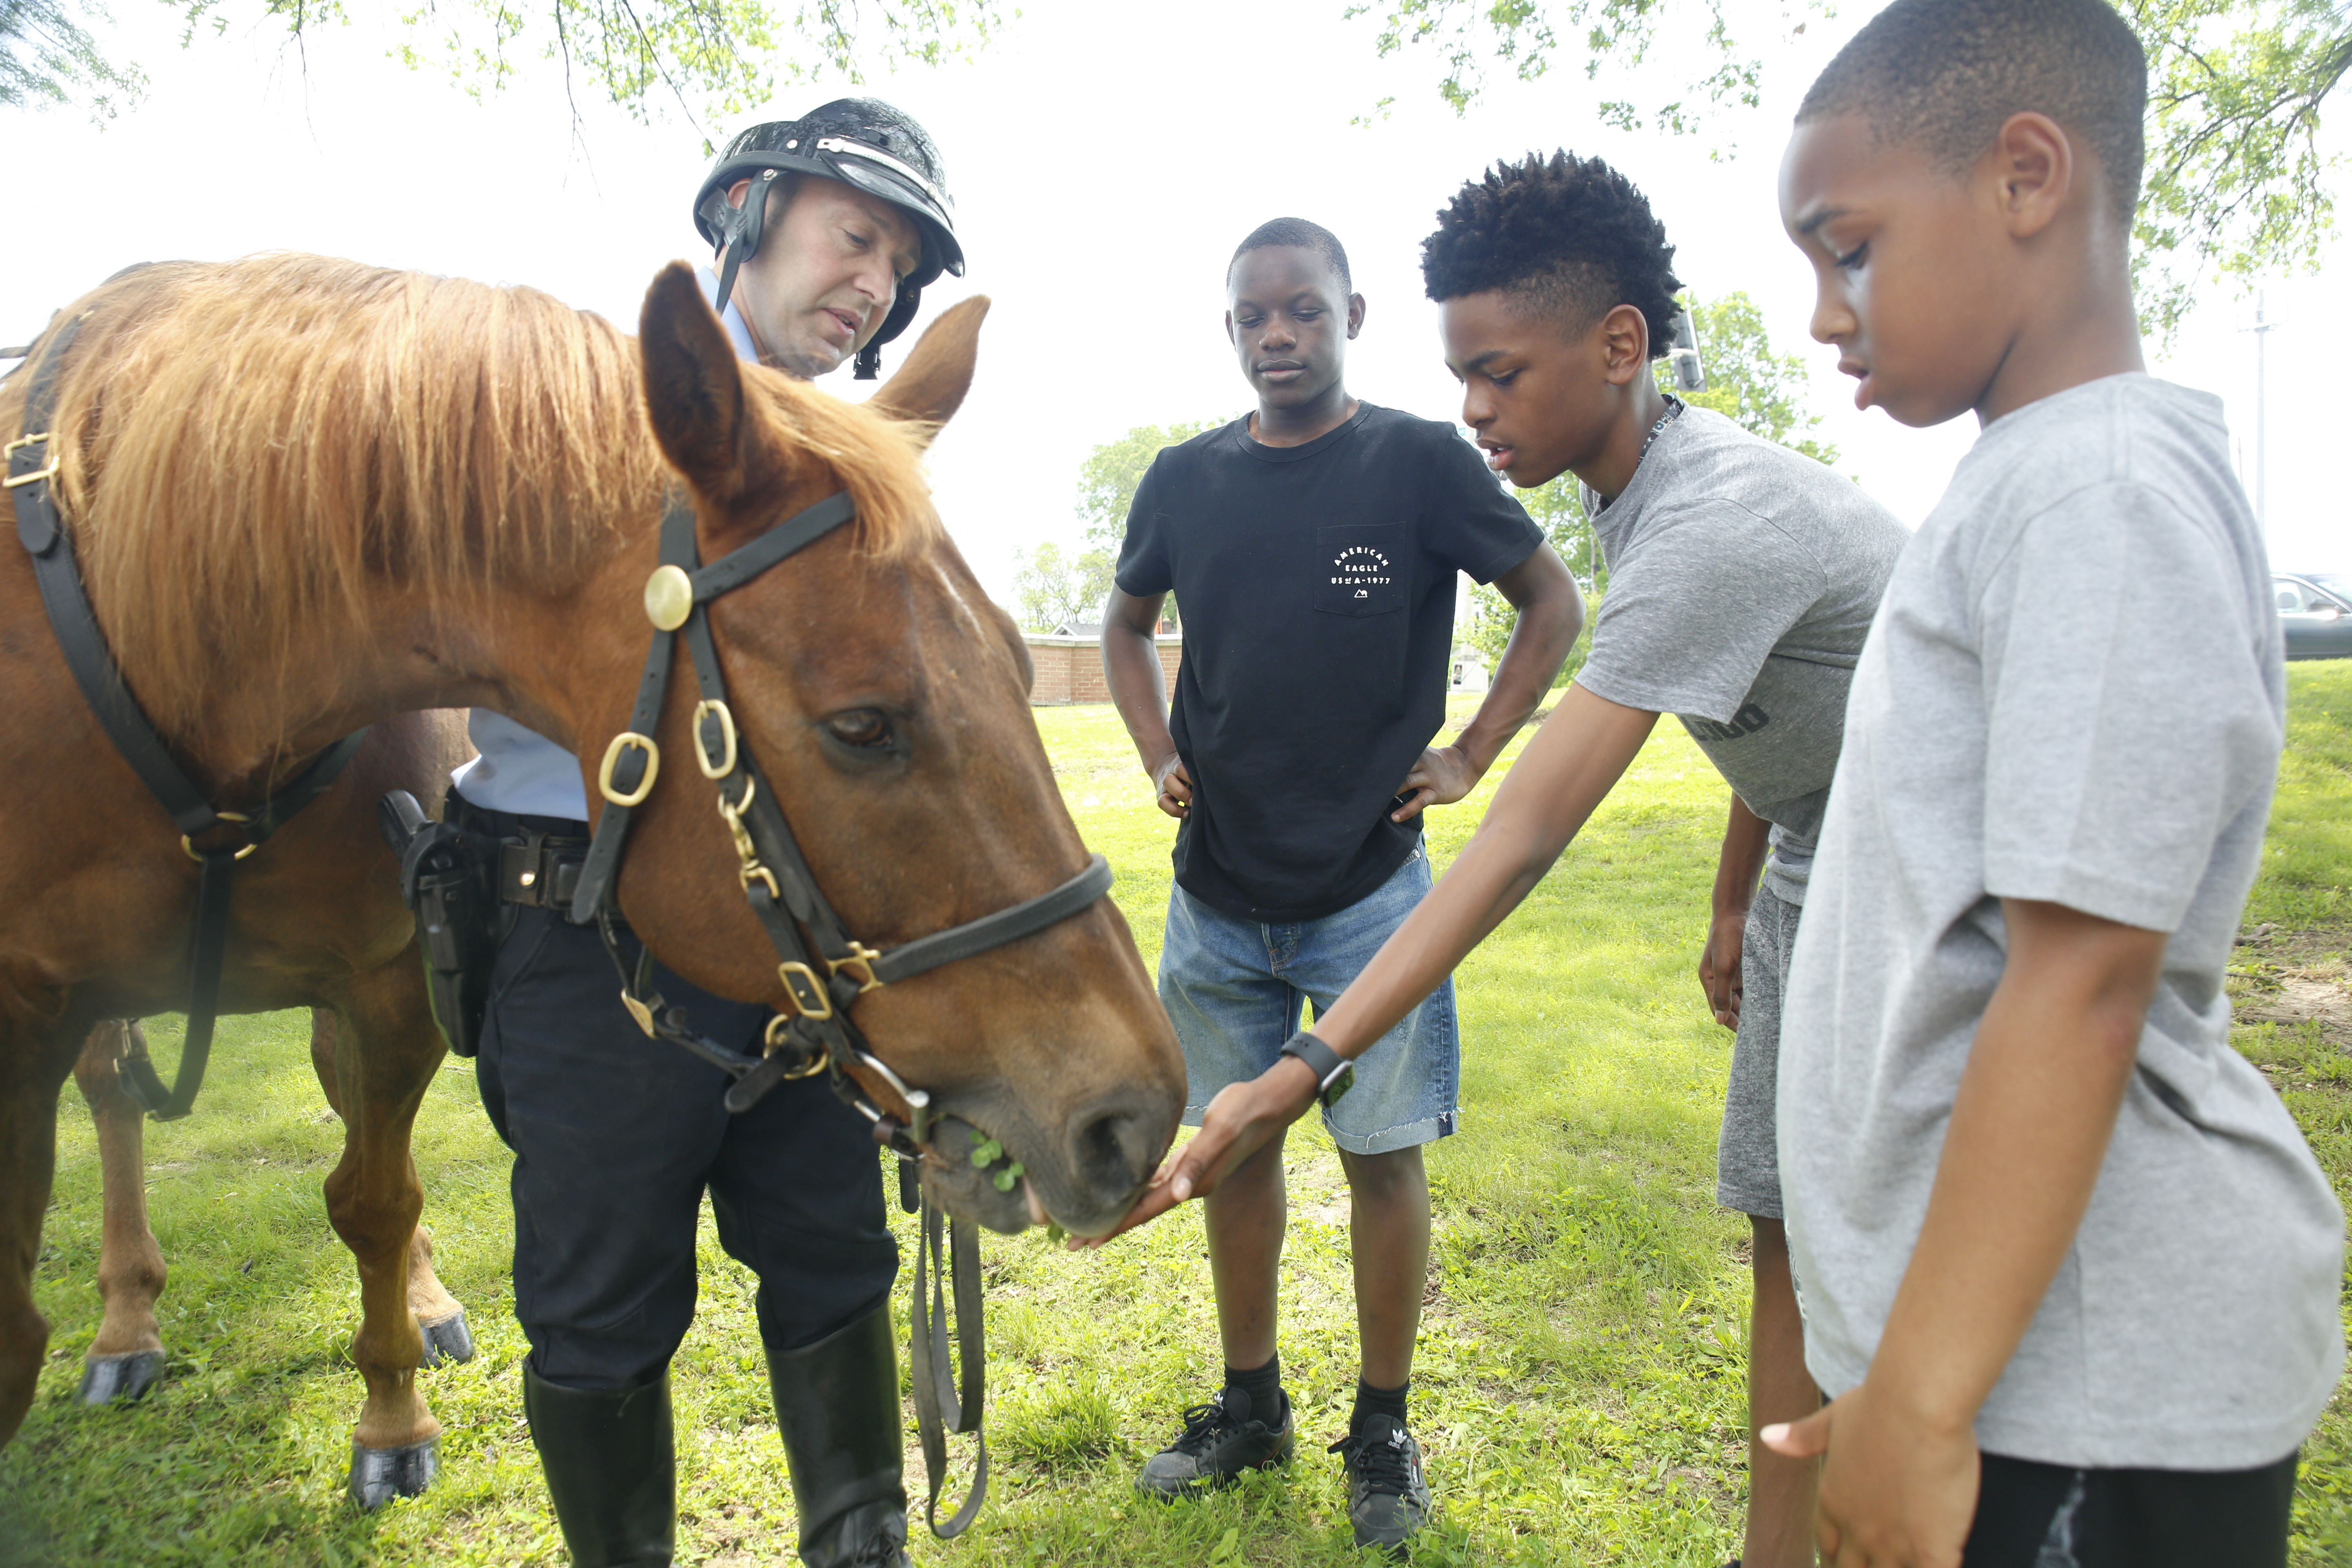 Spring Fest seeks to grow relationship between cops and the community